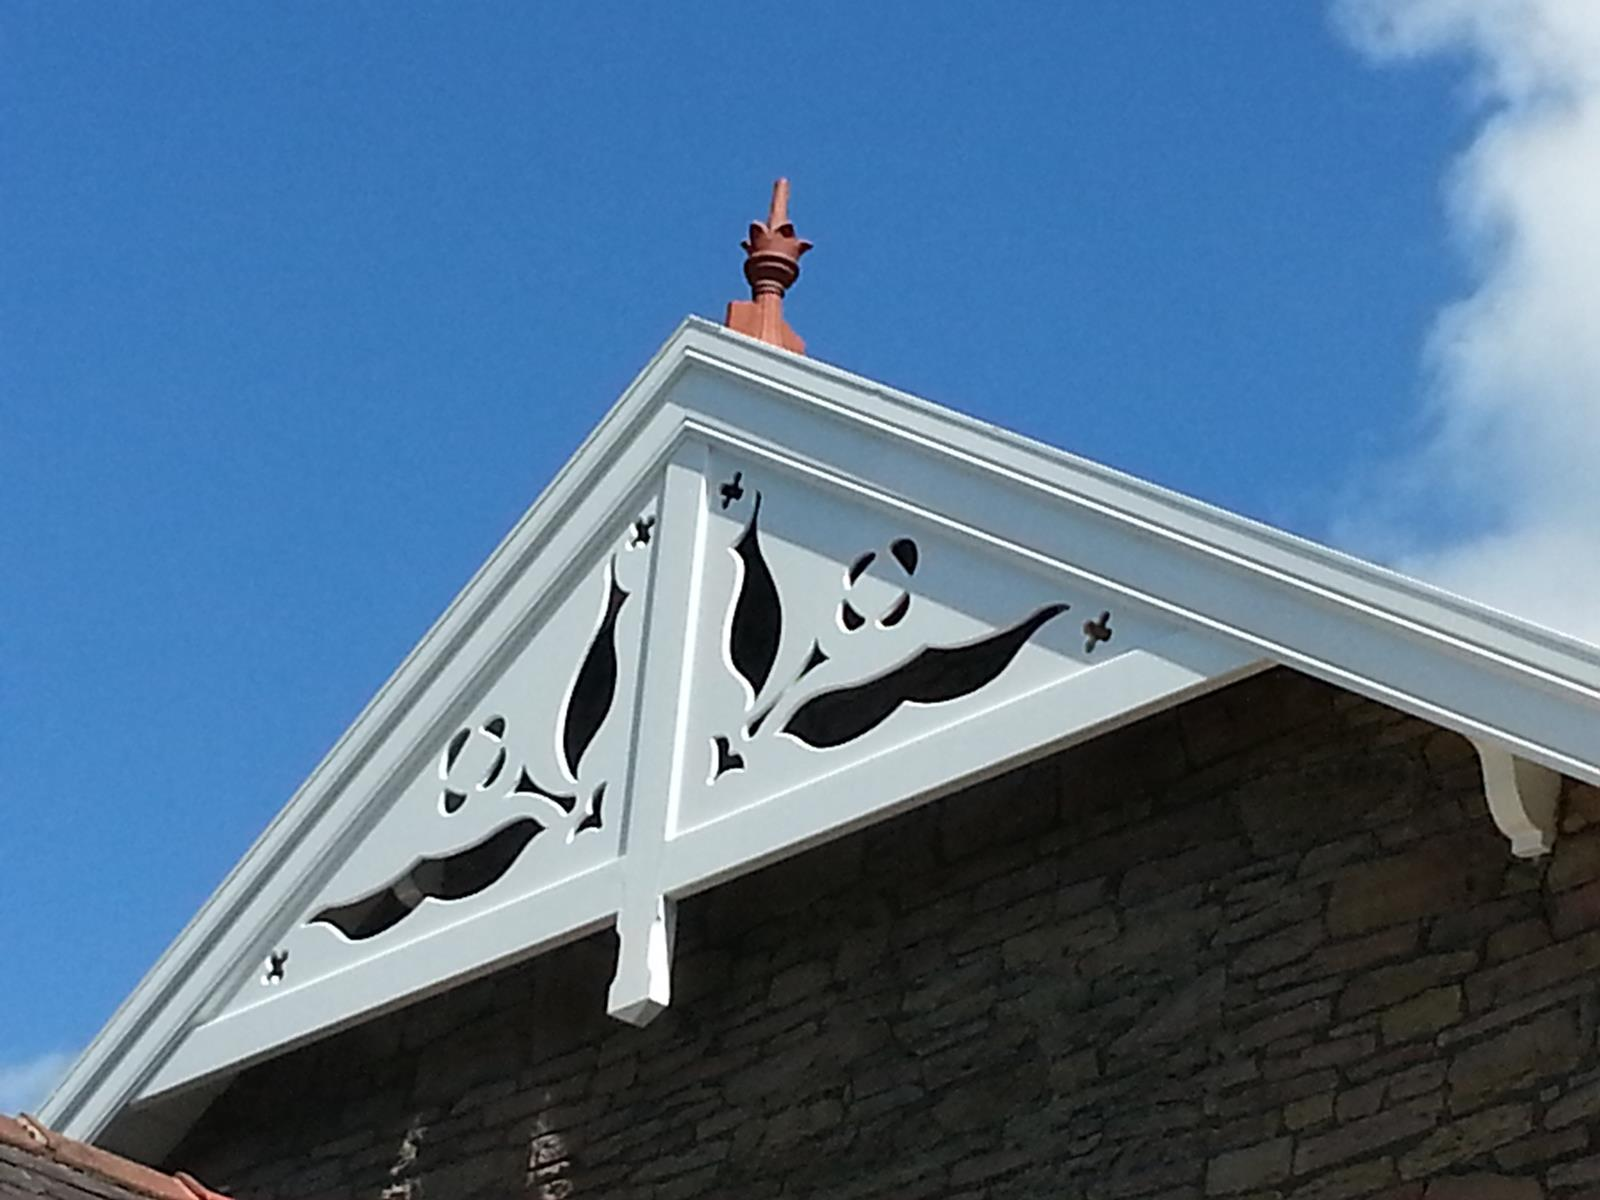 gable end crown crest roof finial